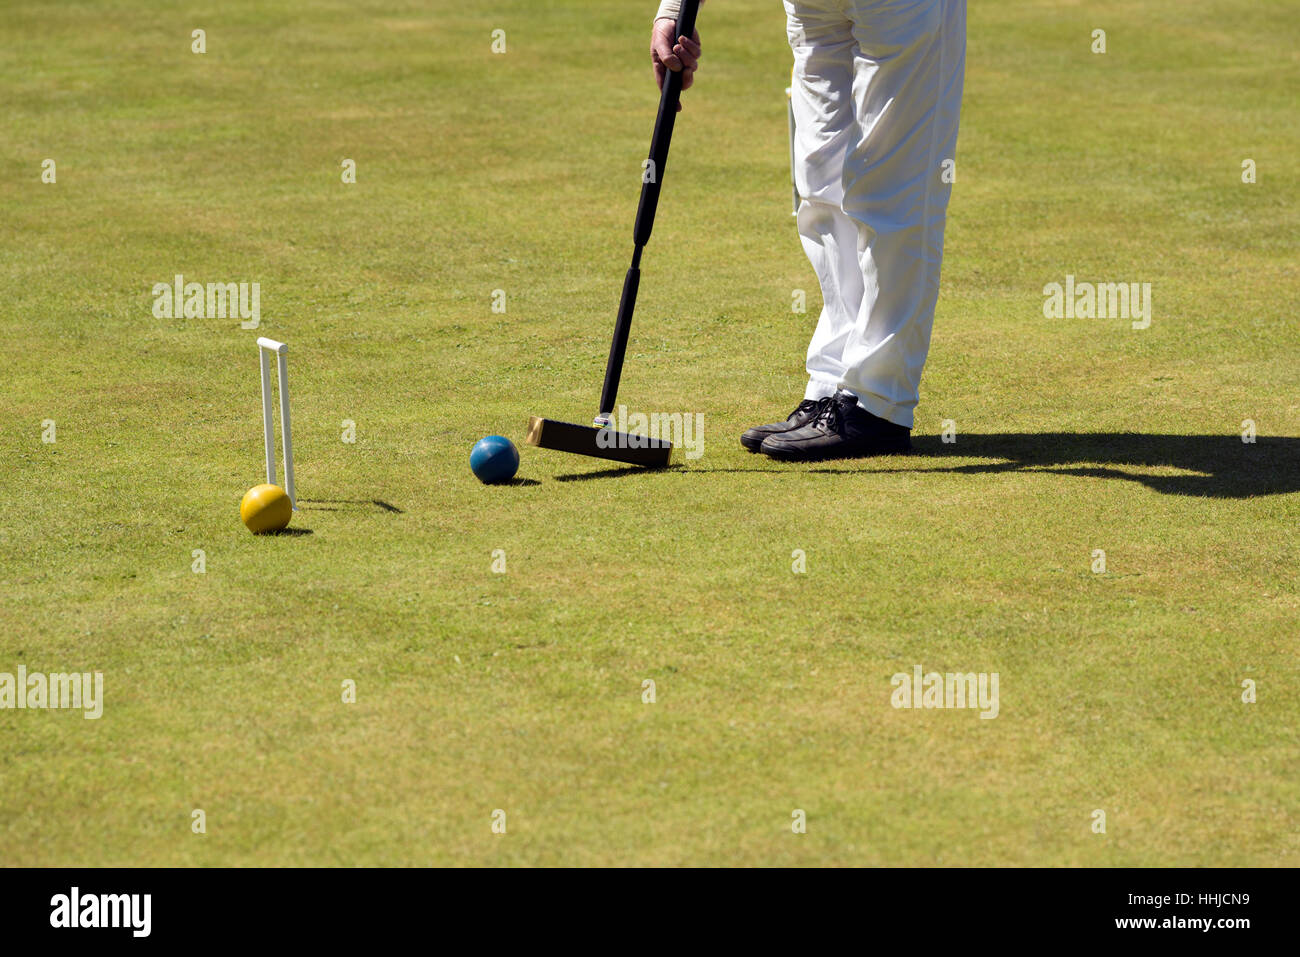 Close-up of a man hitting a croquet ball with a mallet. - Stock Image